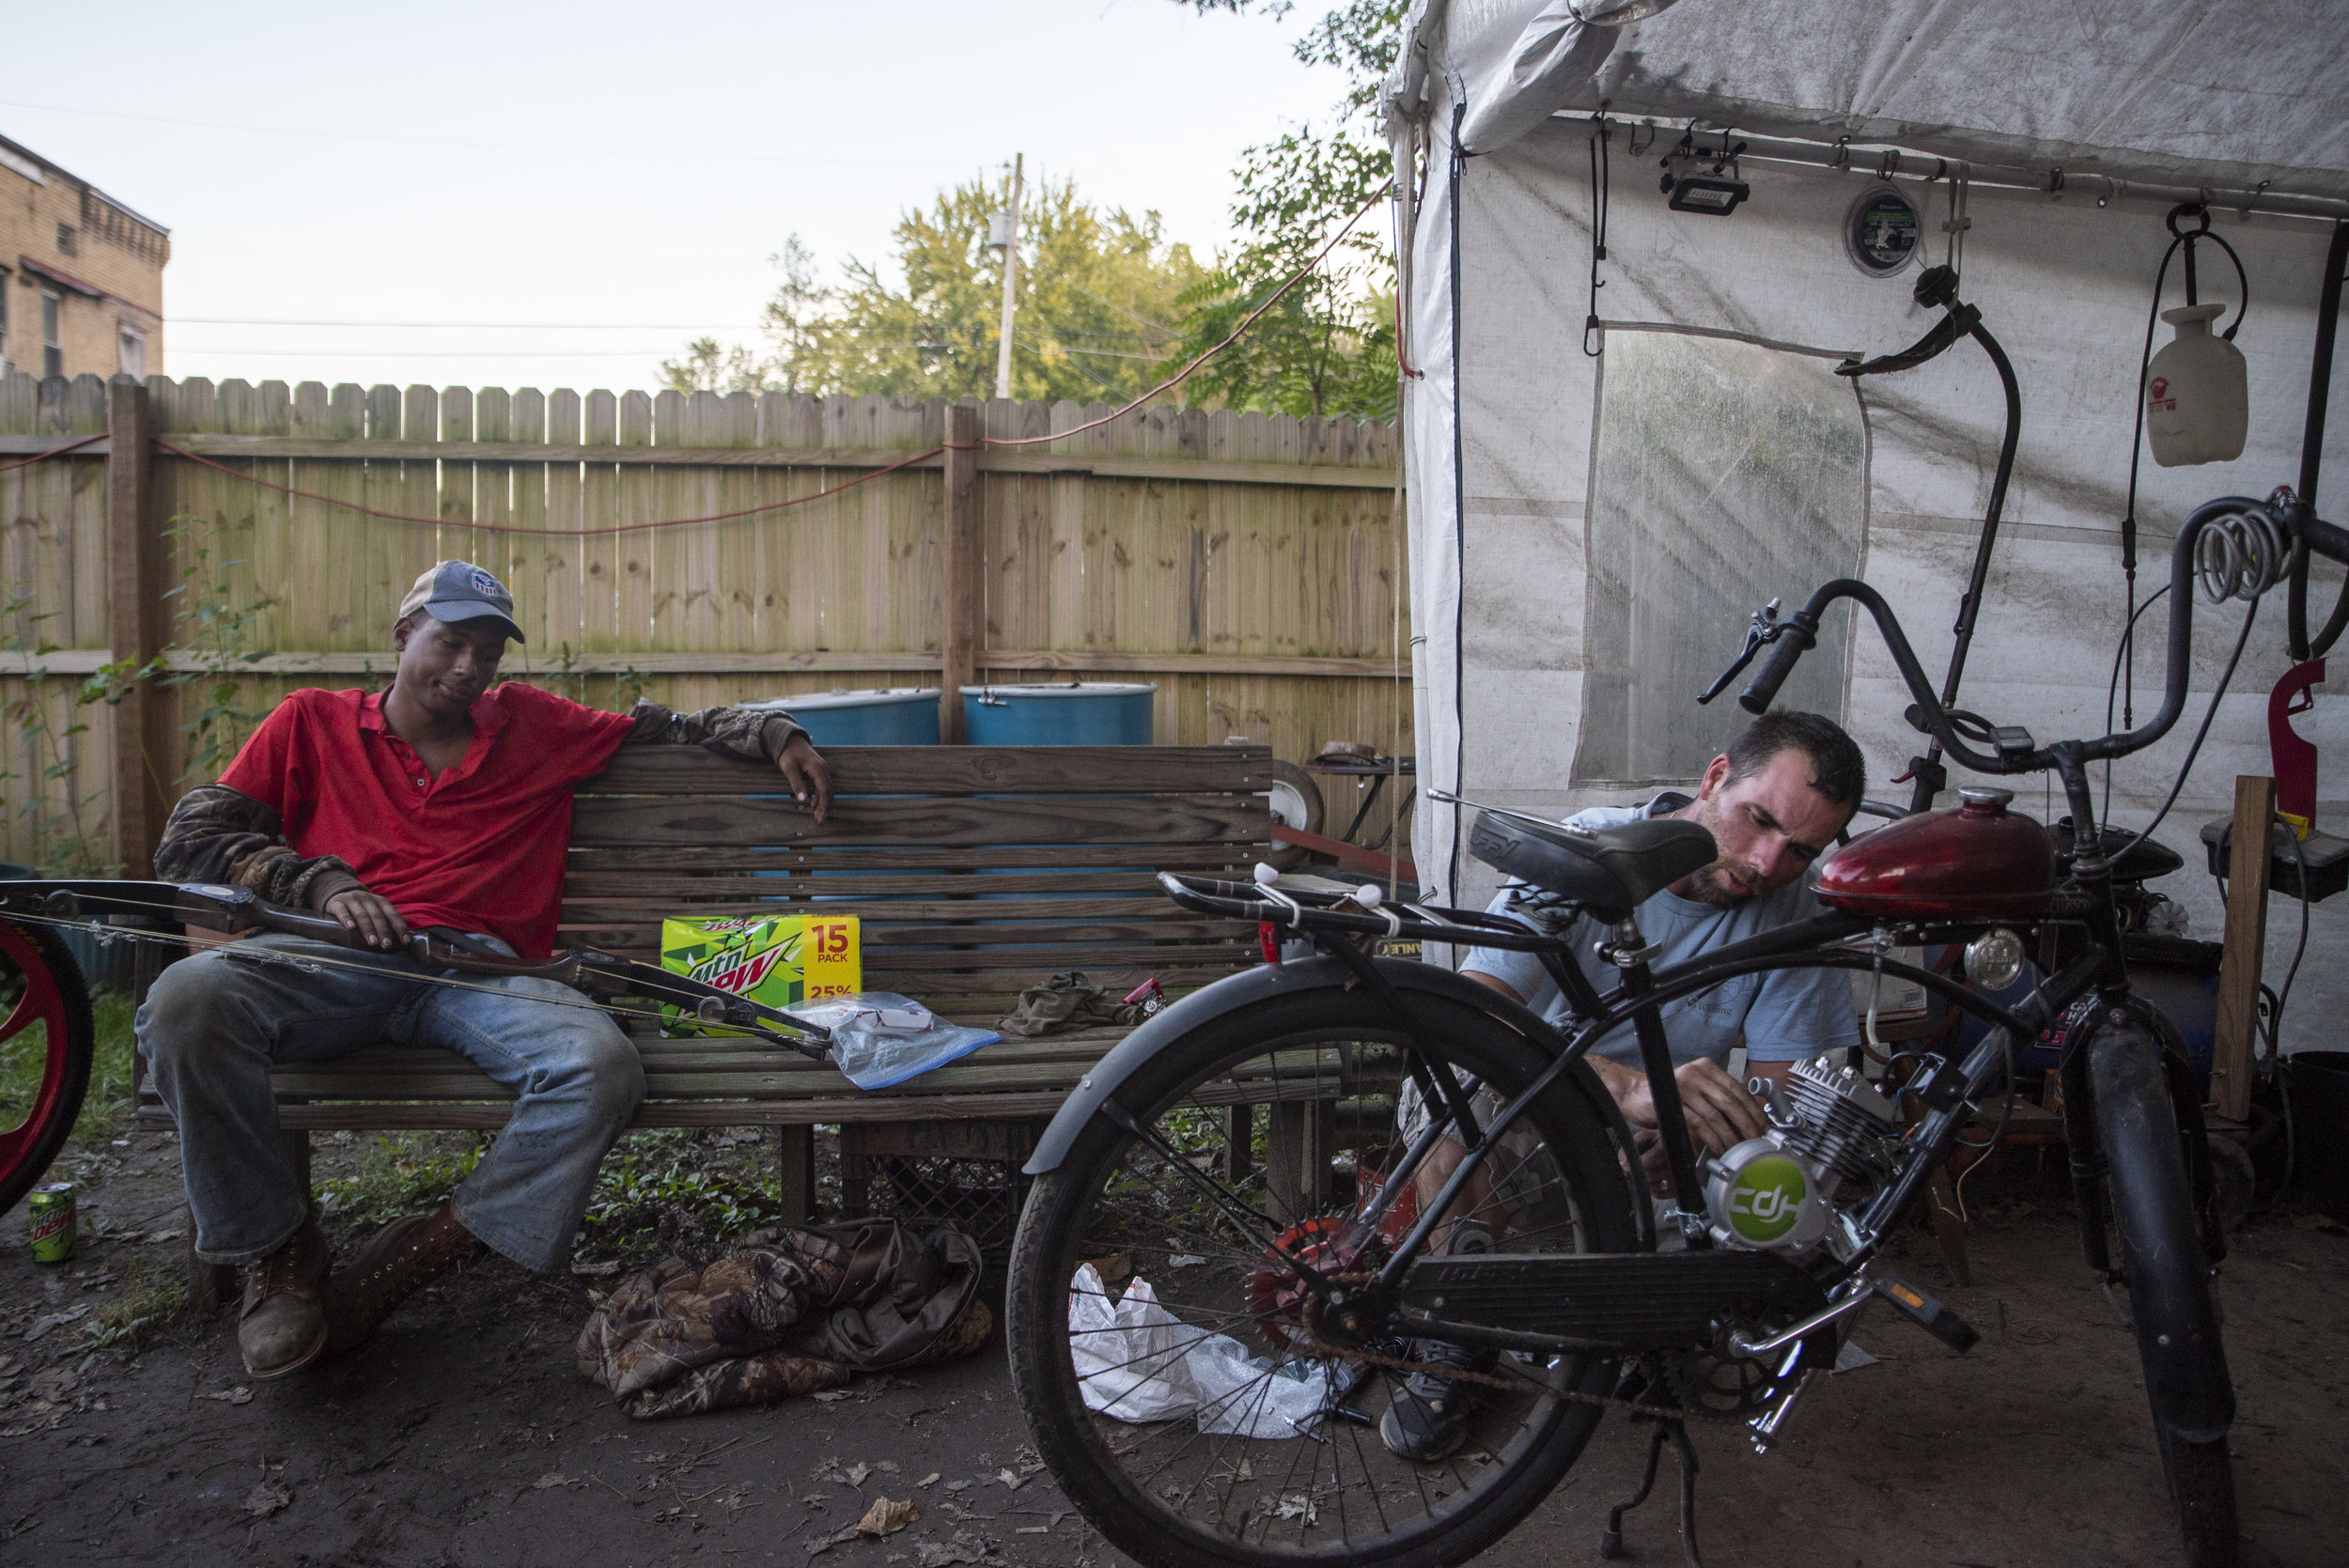 Calvin and an unnamed gentleman converse while Calvin works on repairing a motorized bicycle.